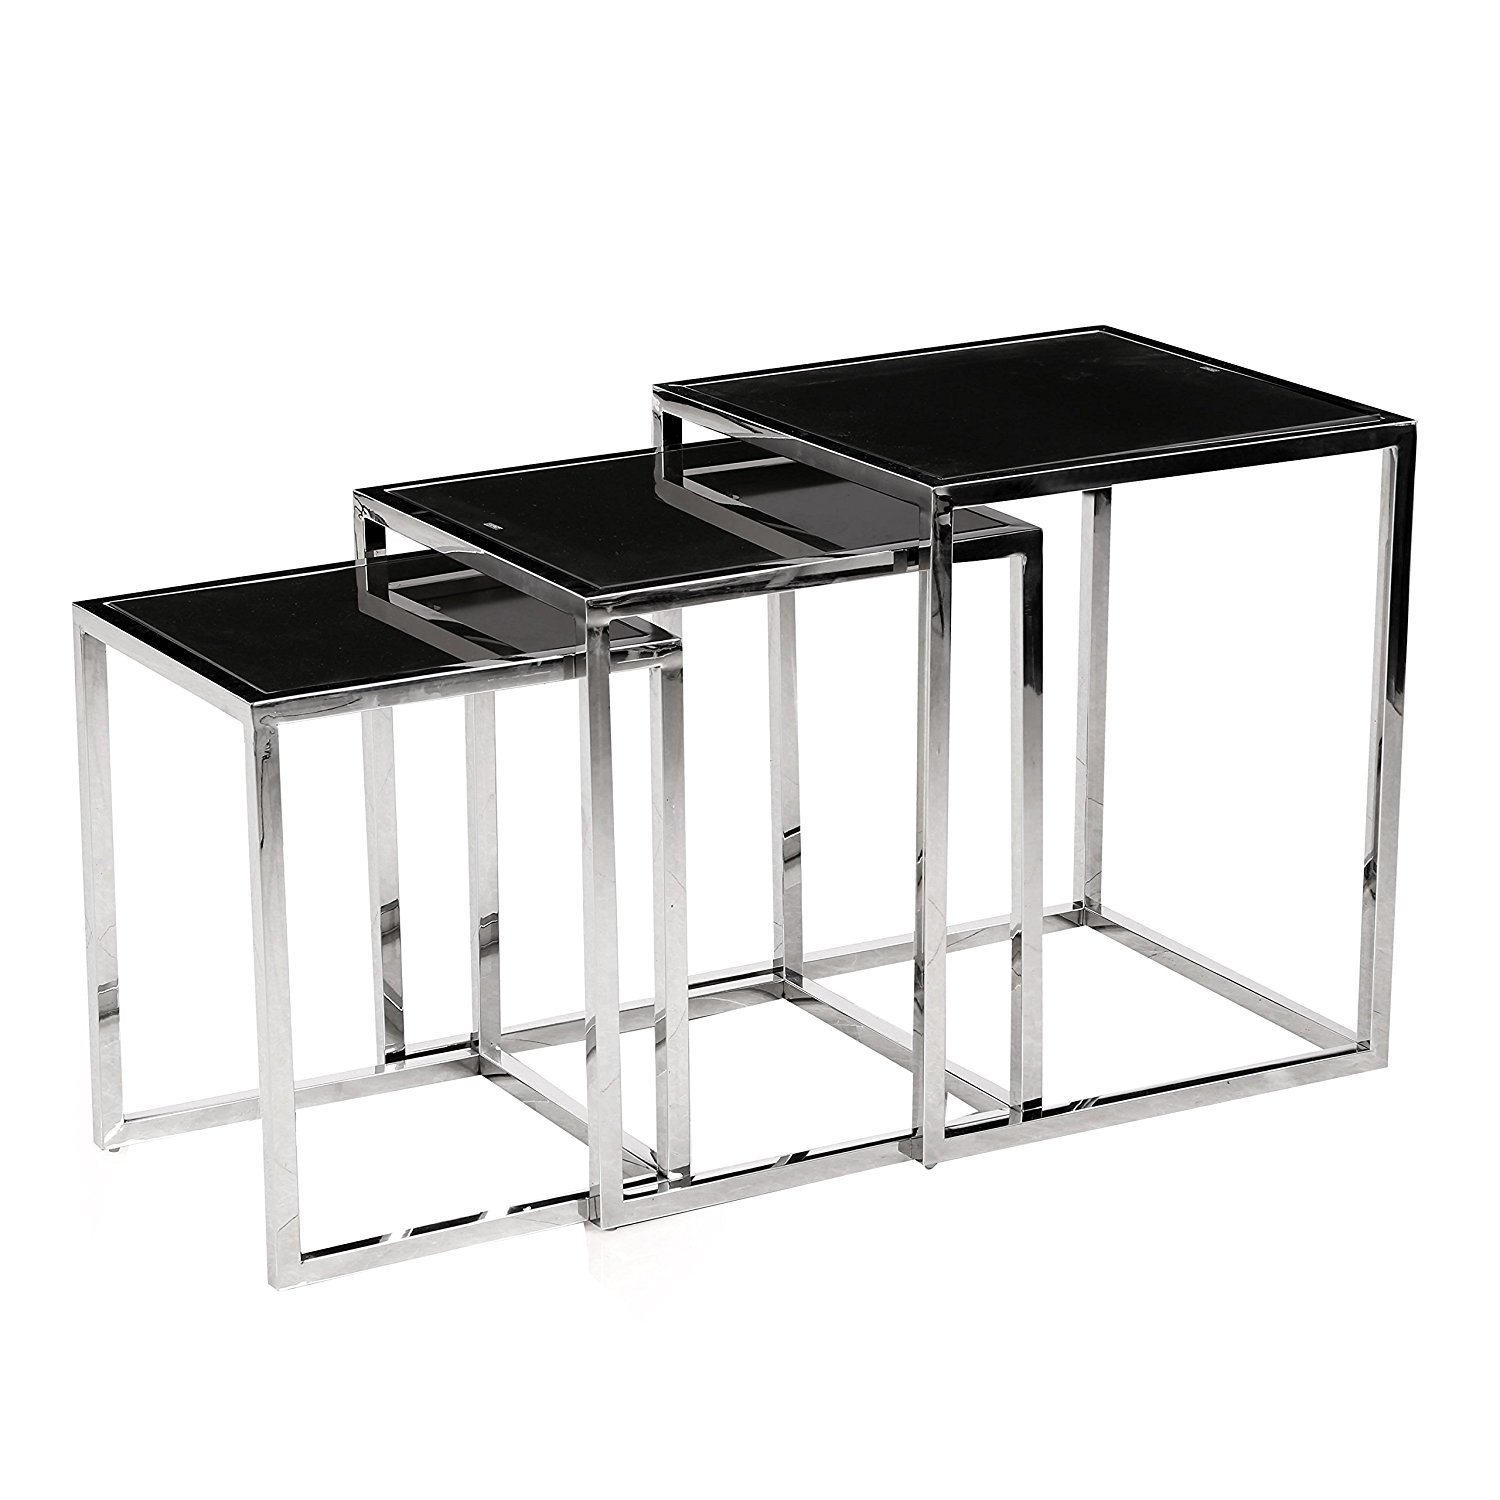 Bella Esprit Chrome Metal 3-piece Nesting Table with Black Glass Tops